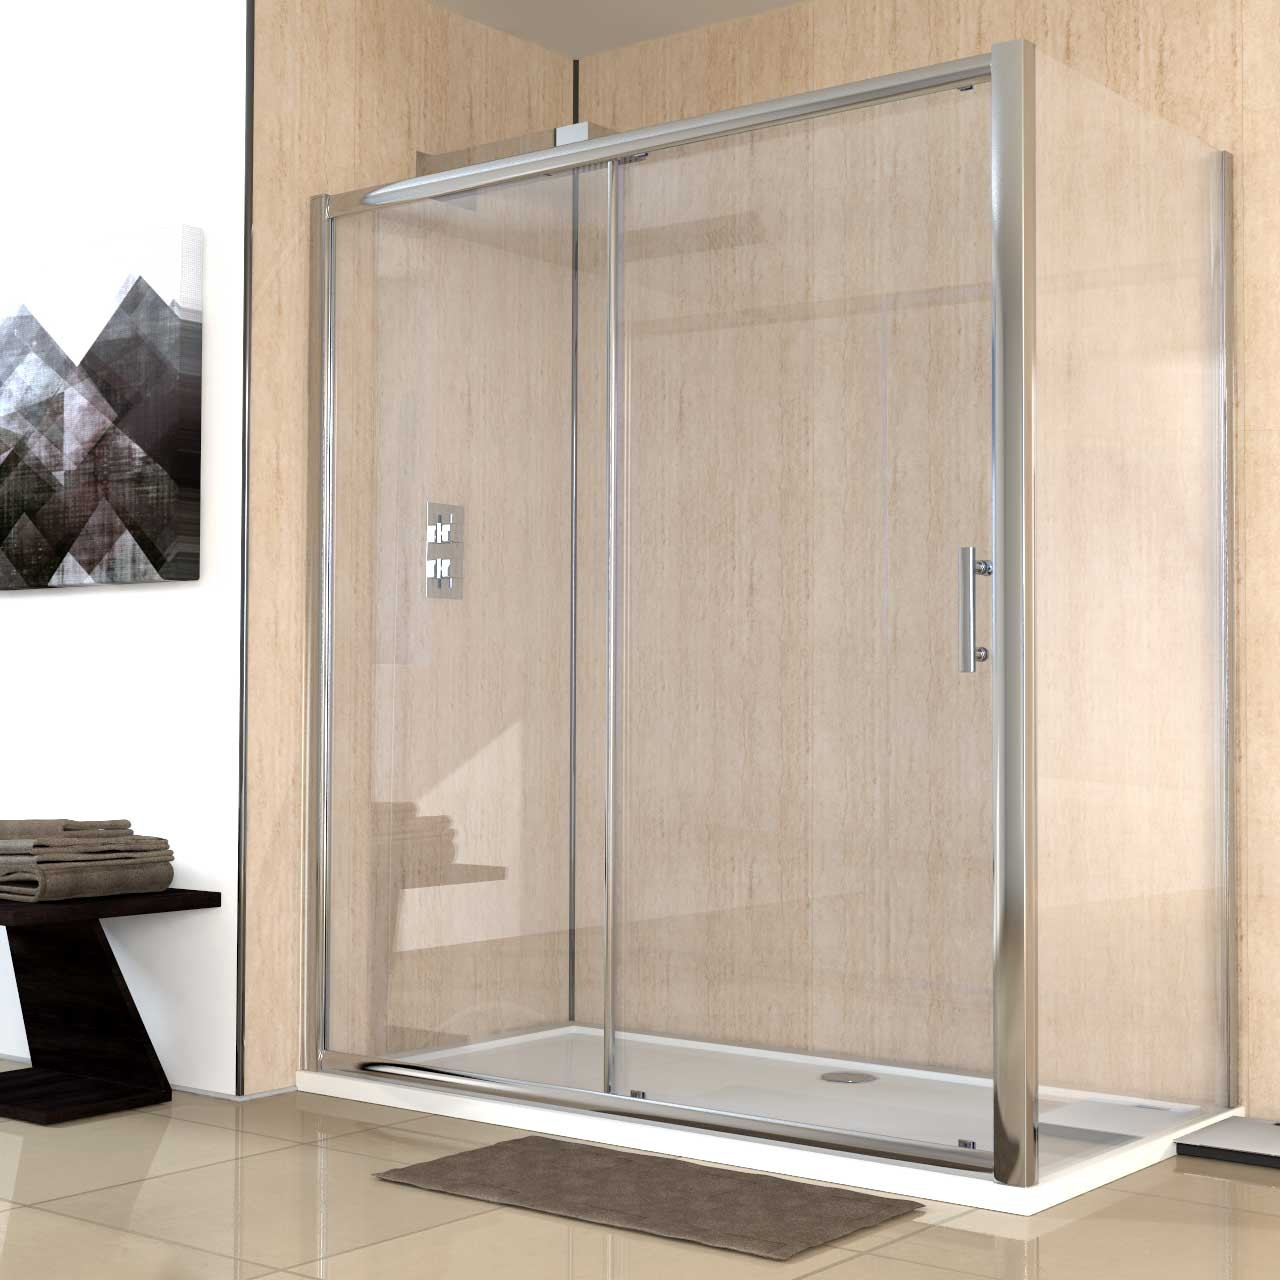 Series 6 1700mm x 900mm Sliding Door Shower Enclosure